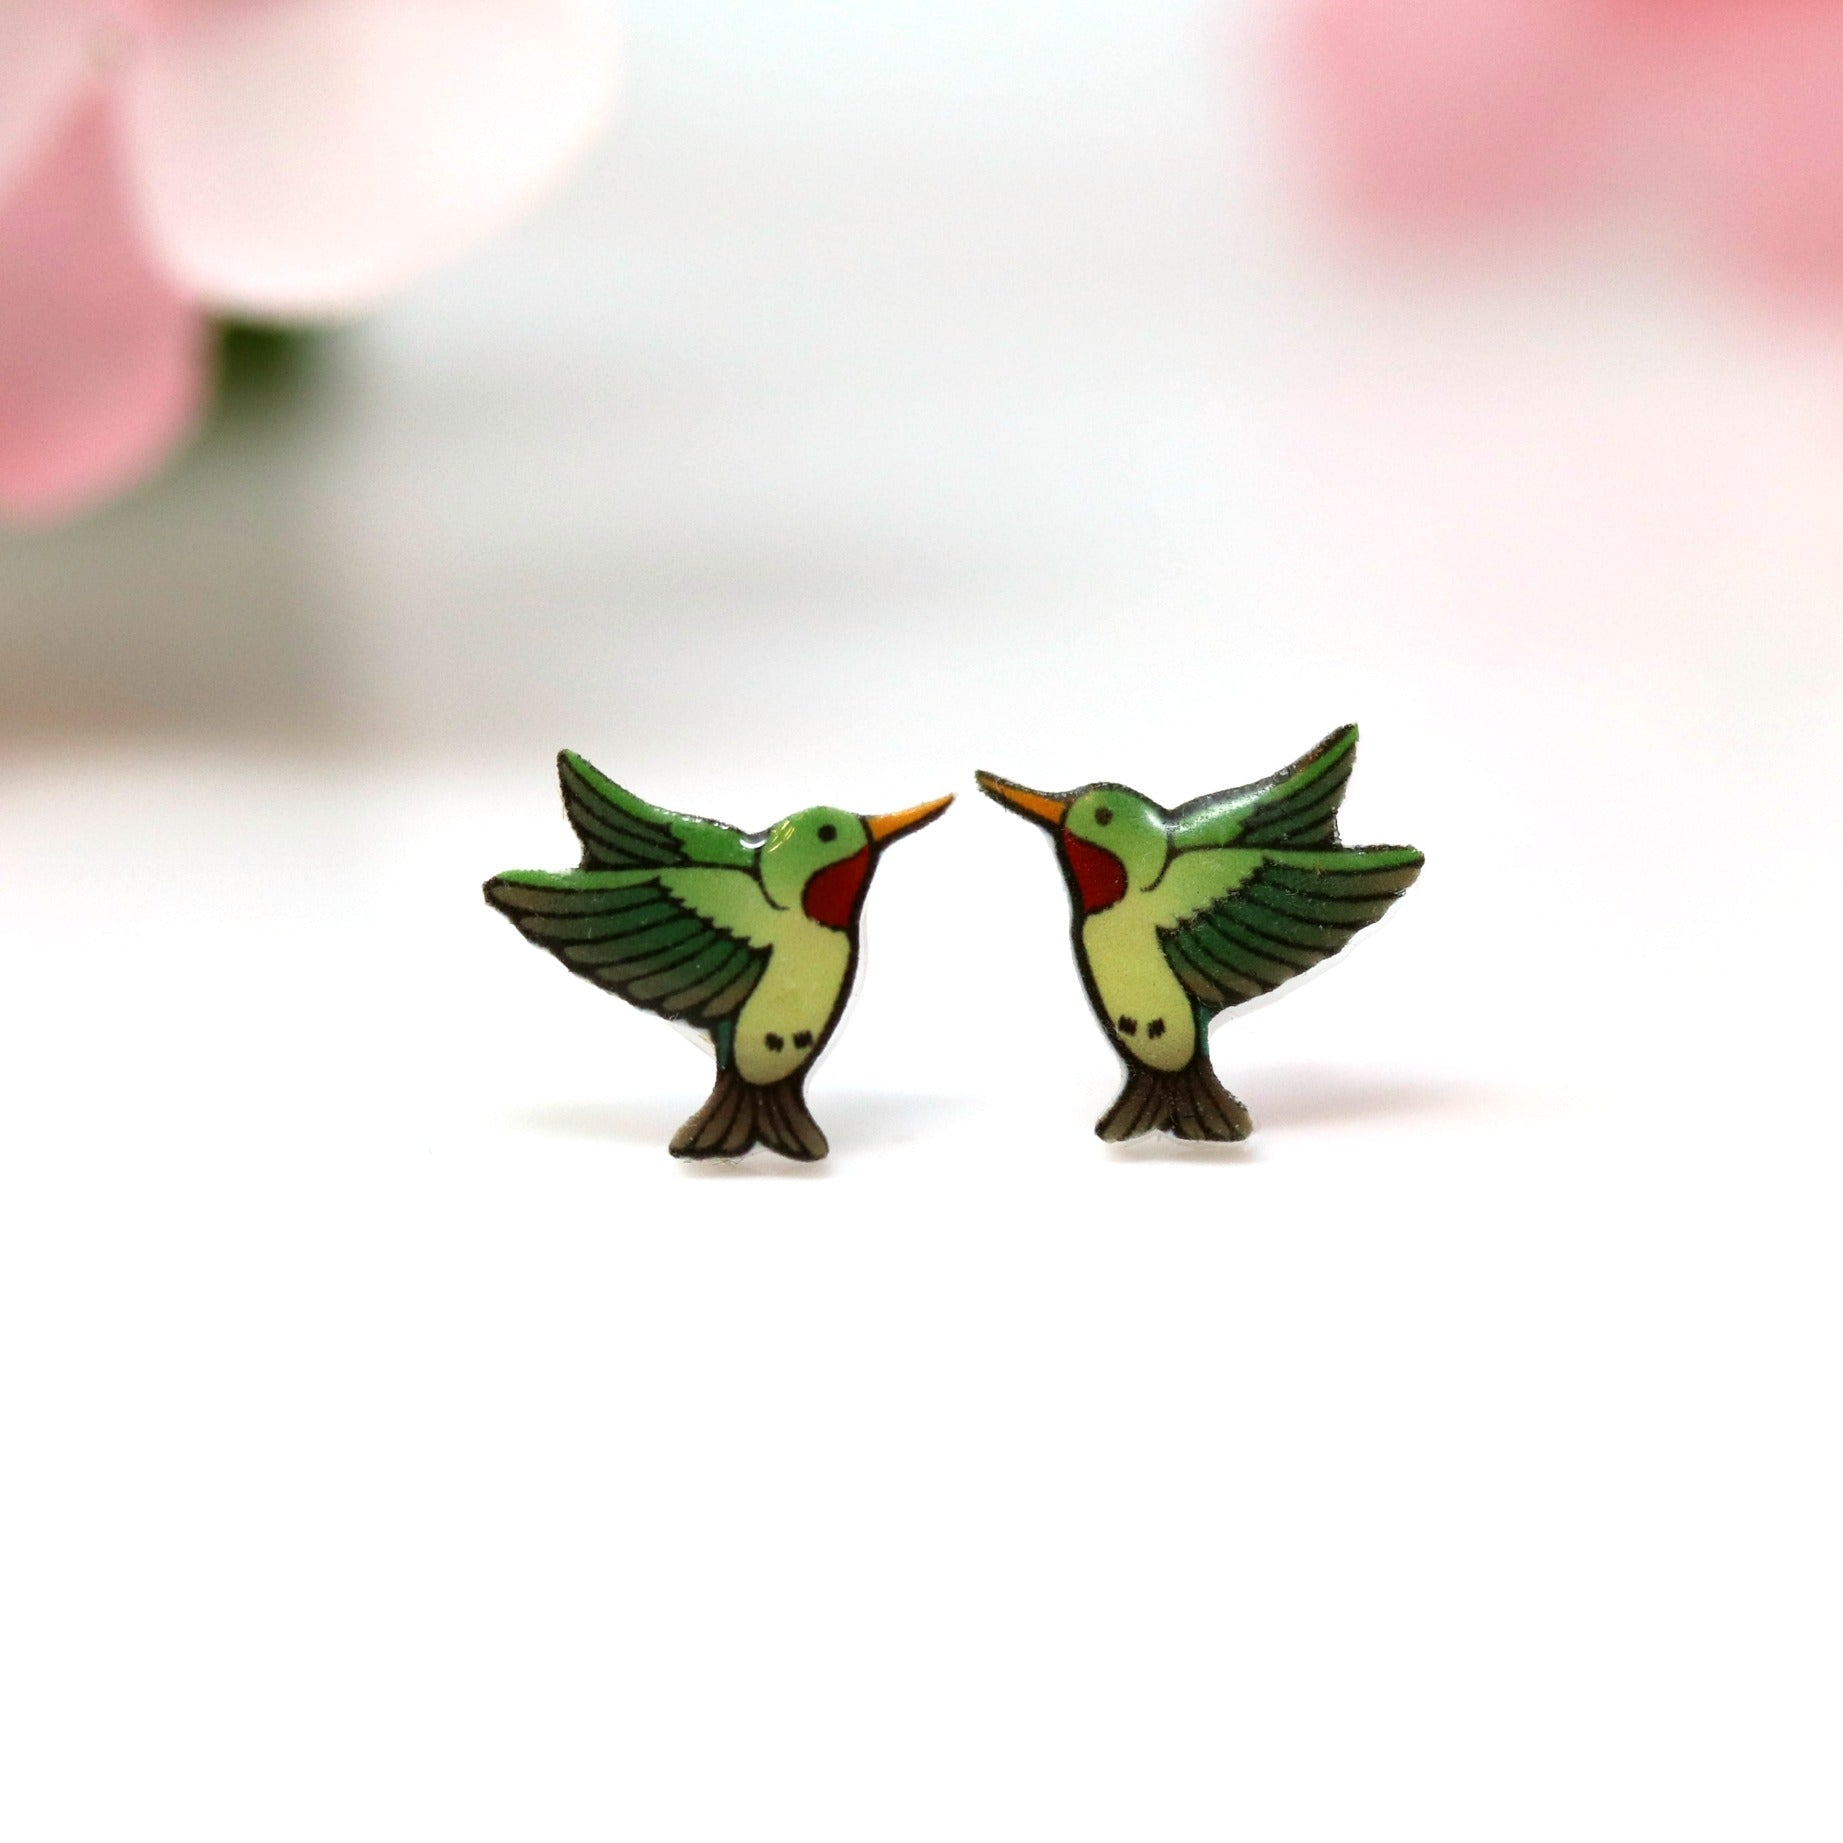 Hummingbird Stud Earrings, Plastic Post or Invisible Clip On, 11mm Metal Free